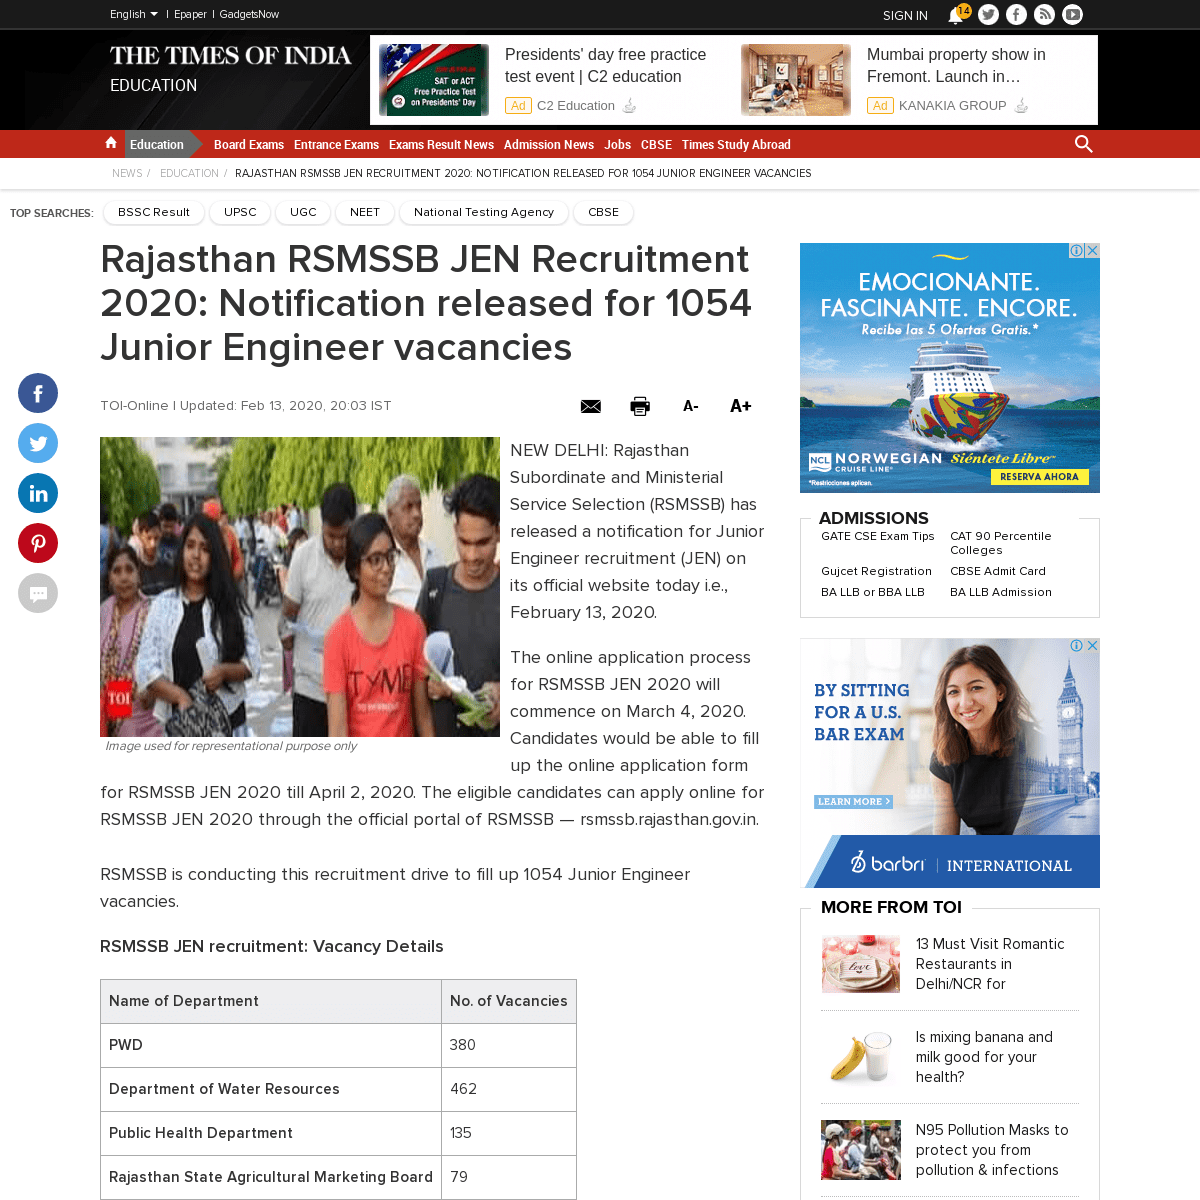 Rajasthan RSMSSB JEN Recruitment 2020- Notification released for 1054 Junior Engineer vacancies - Times of India